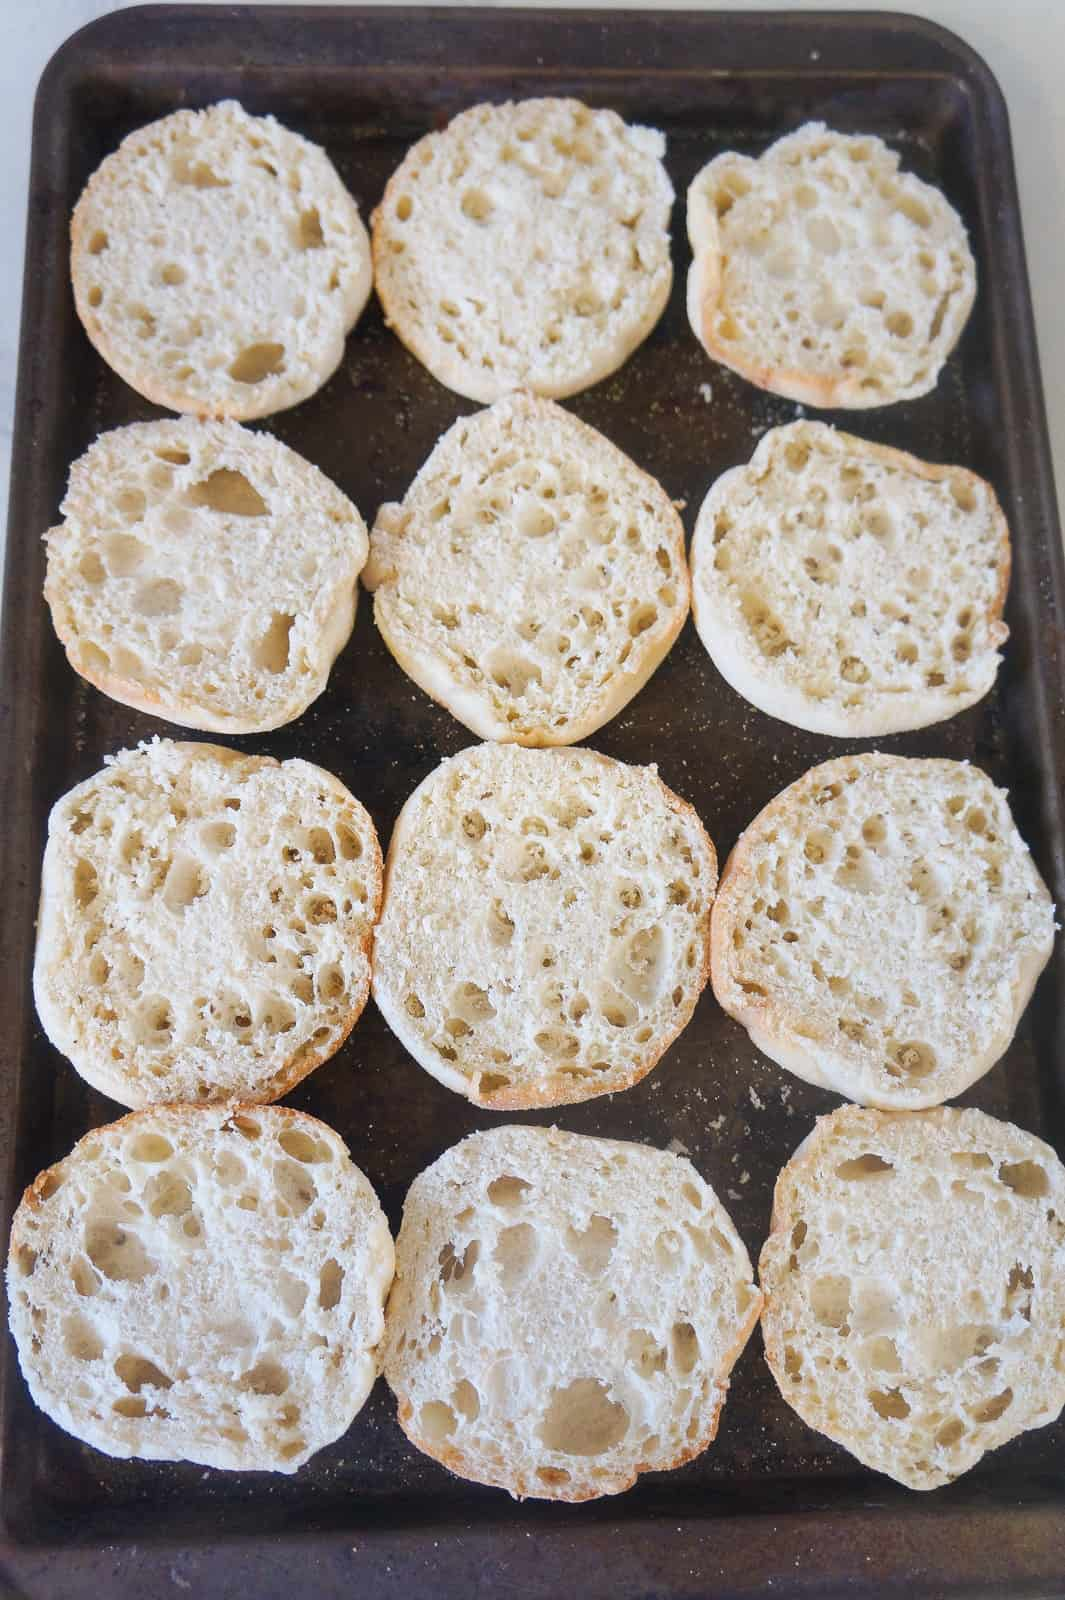 sliced English muffins on baking sheet